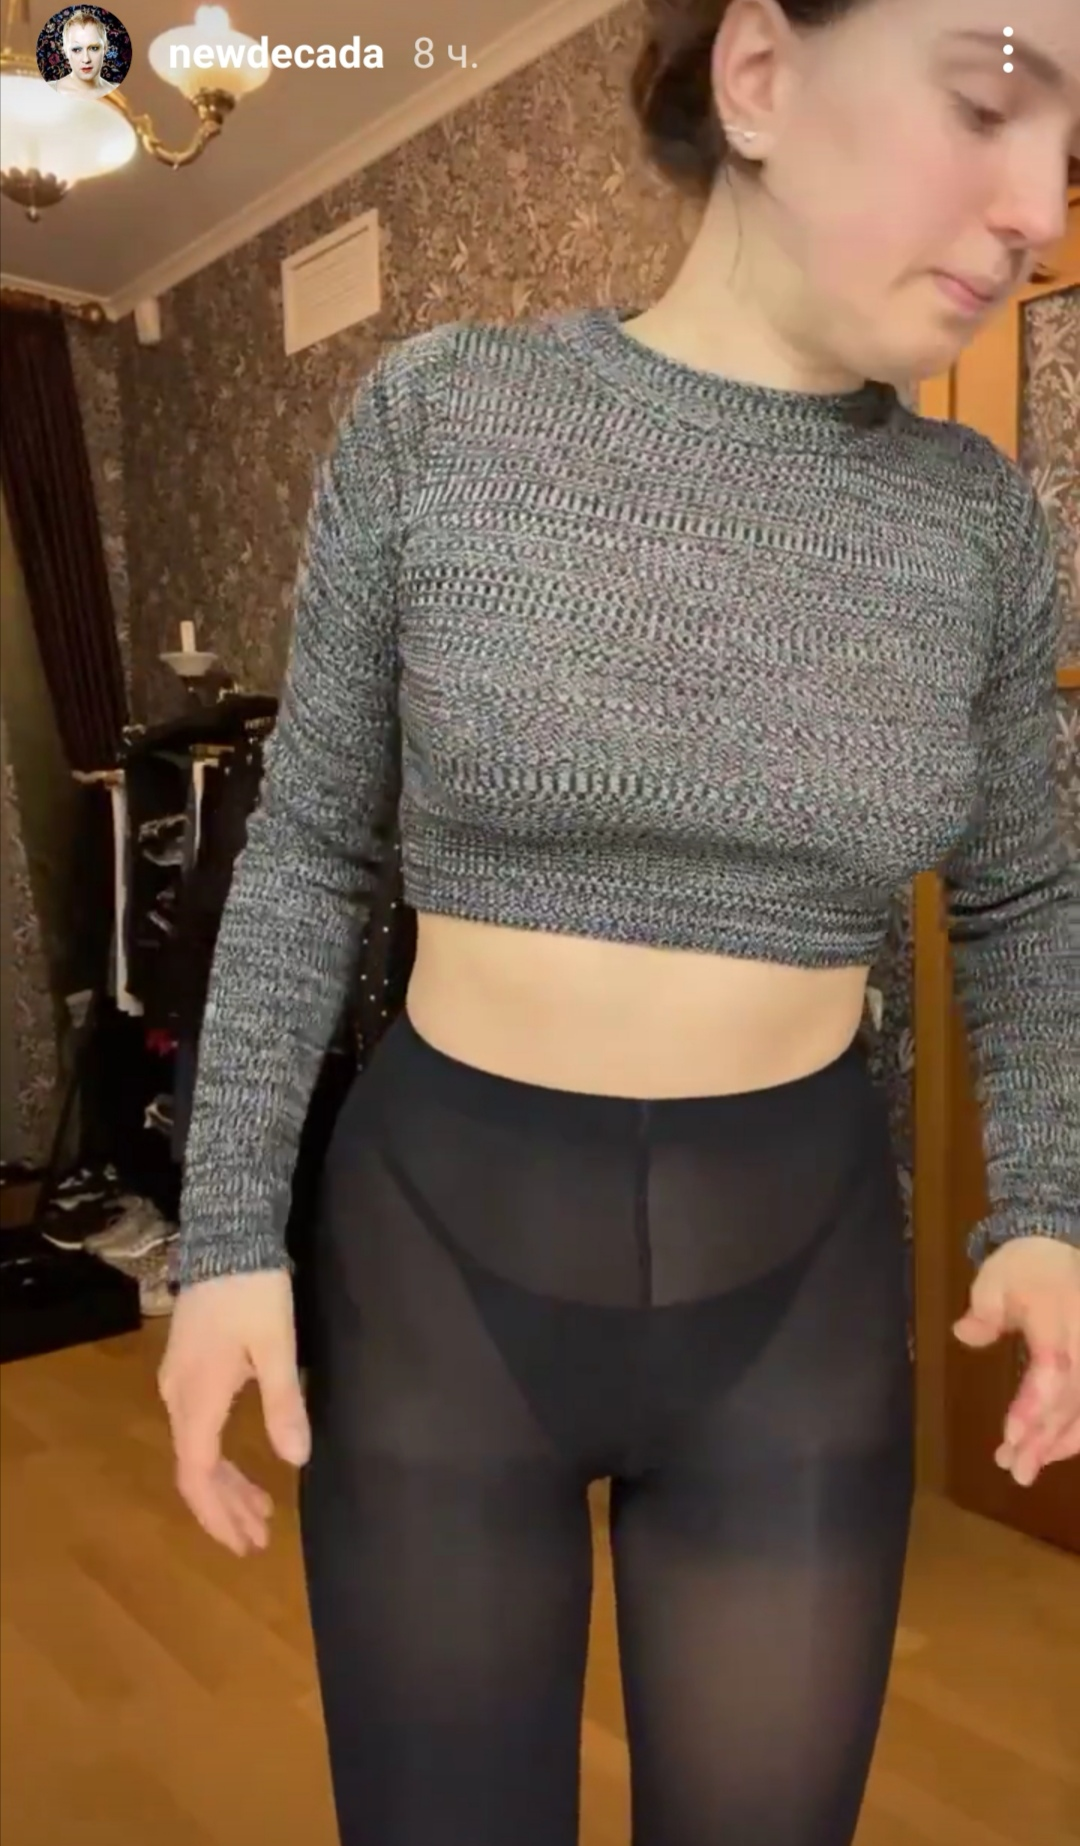 Daughter of Larisa Guzeeva in panties and transparent tights because of her fullness could not fit into any skirt